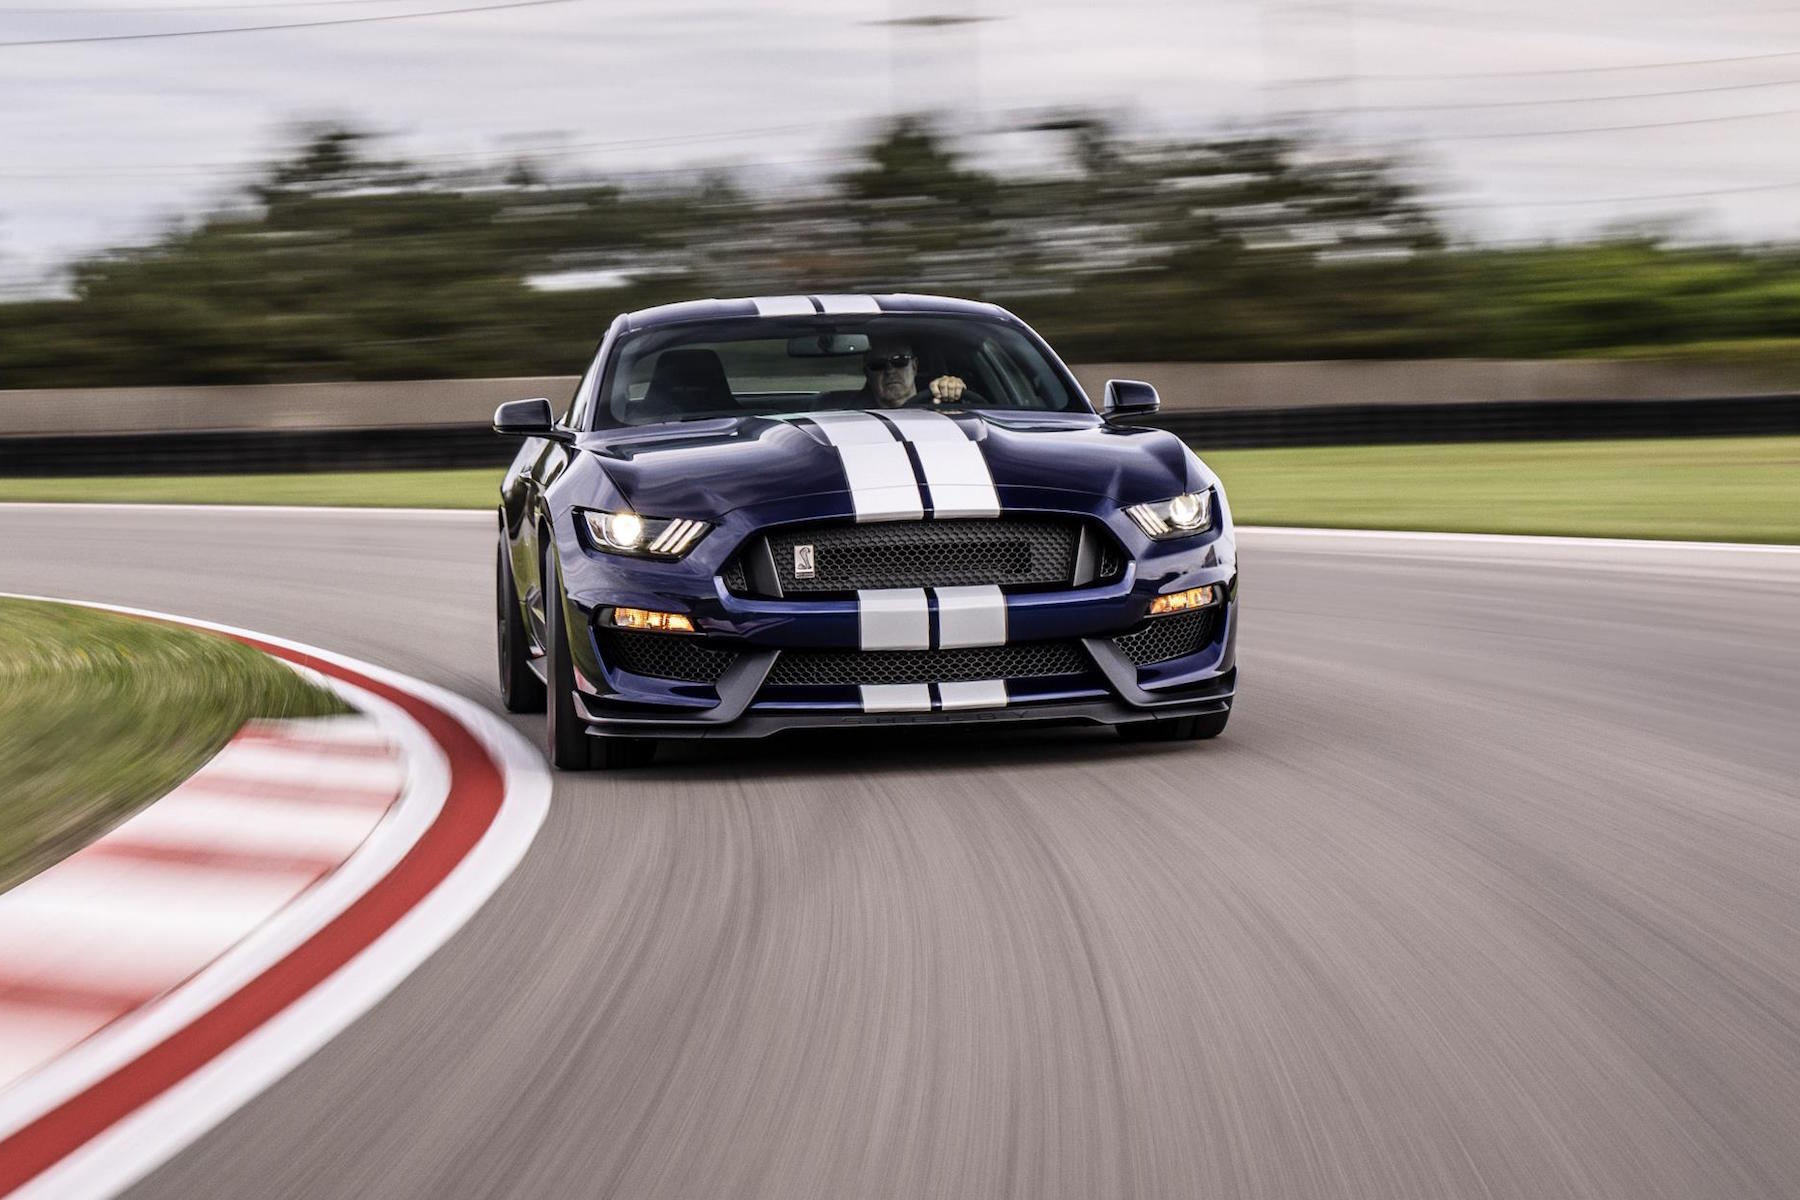 91 The 2019 Ford Mustang Shelby Gt 350 Release